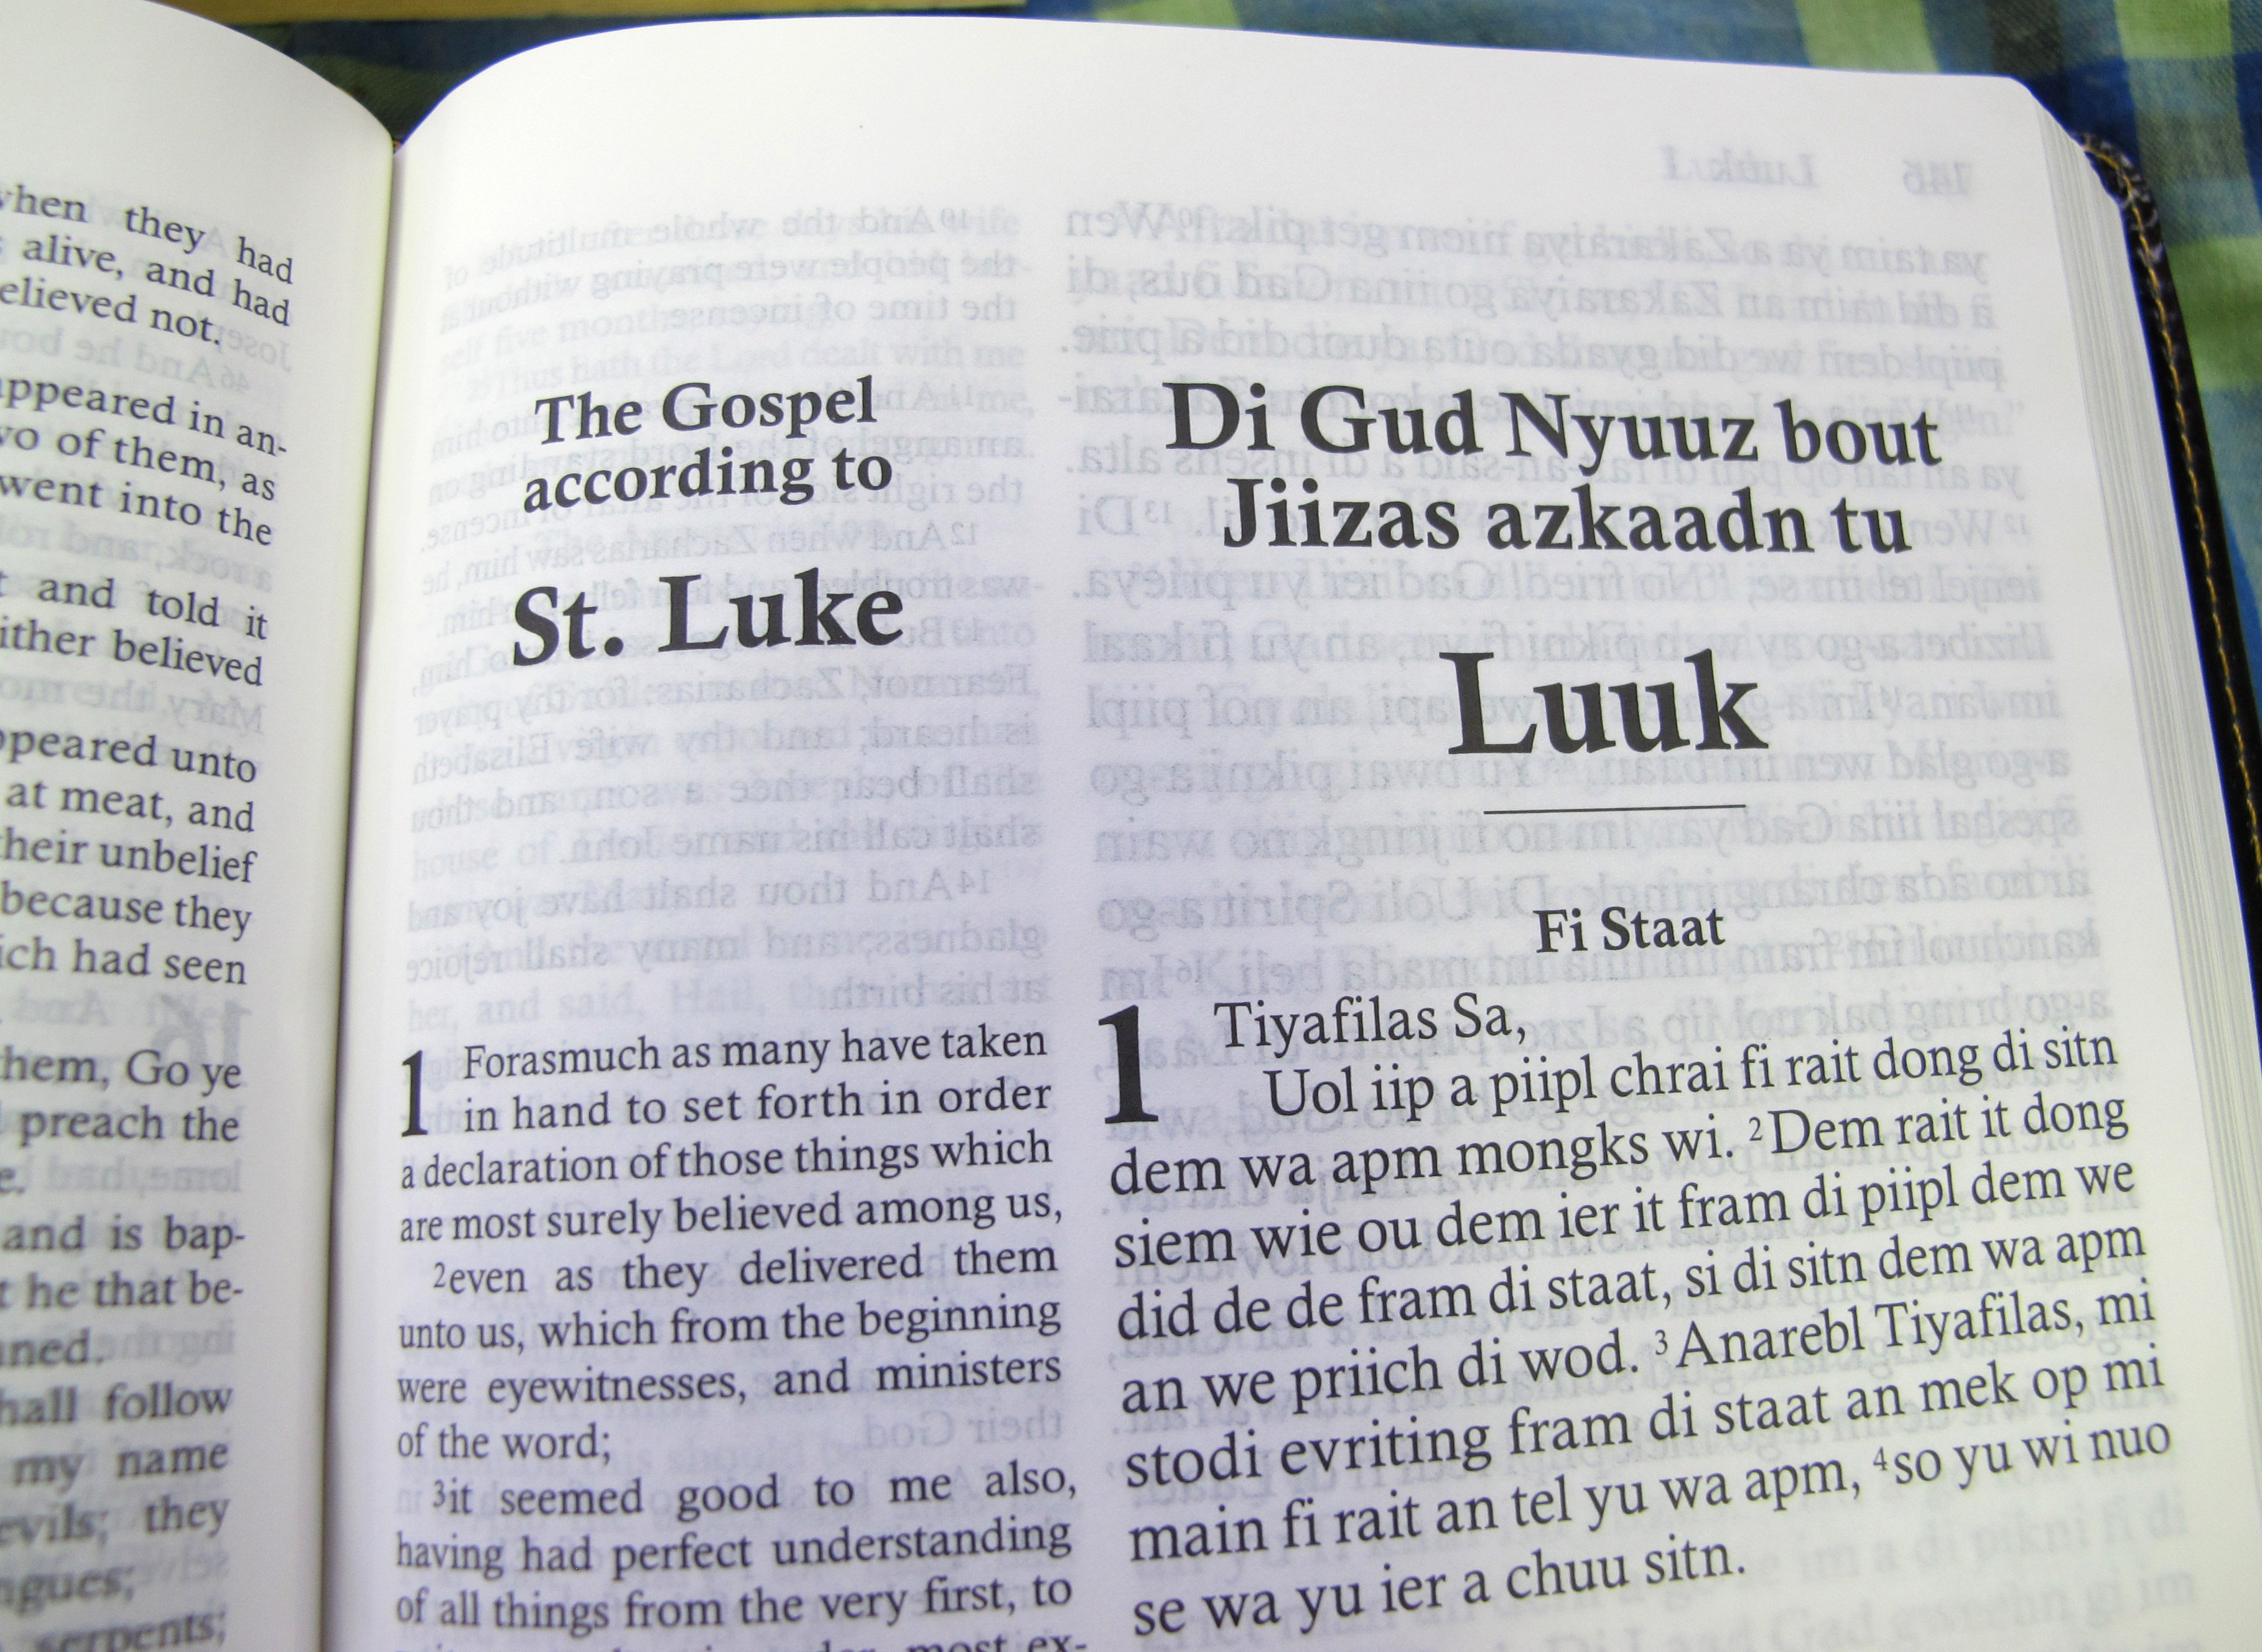 The First Page Of Gospel According To St Luke Or Di